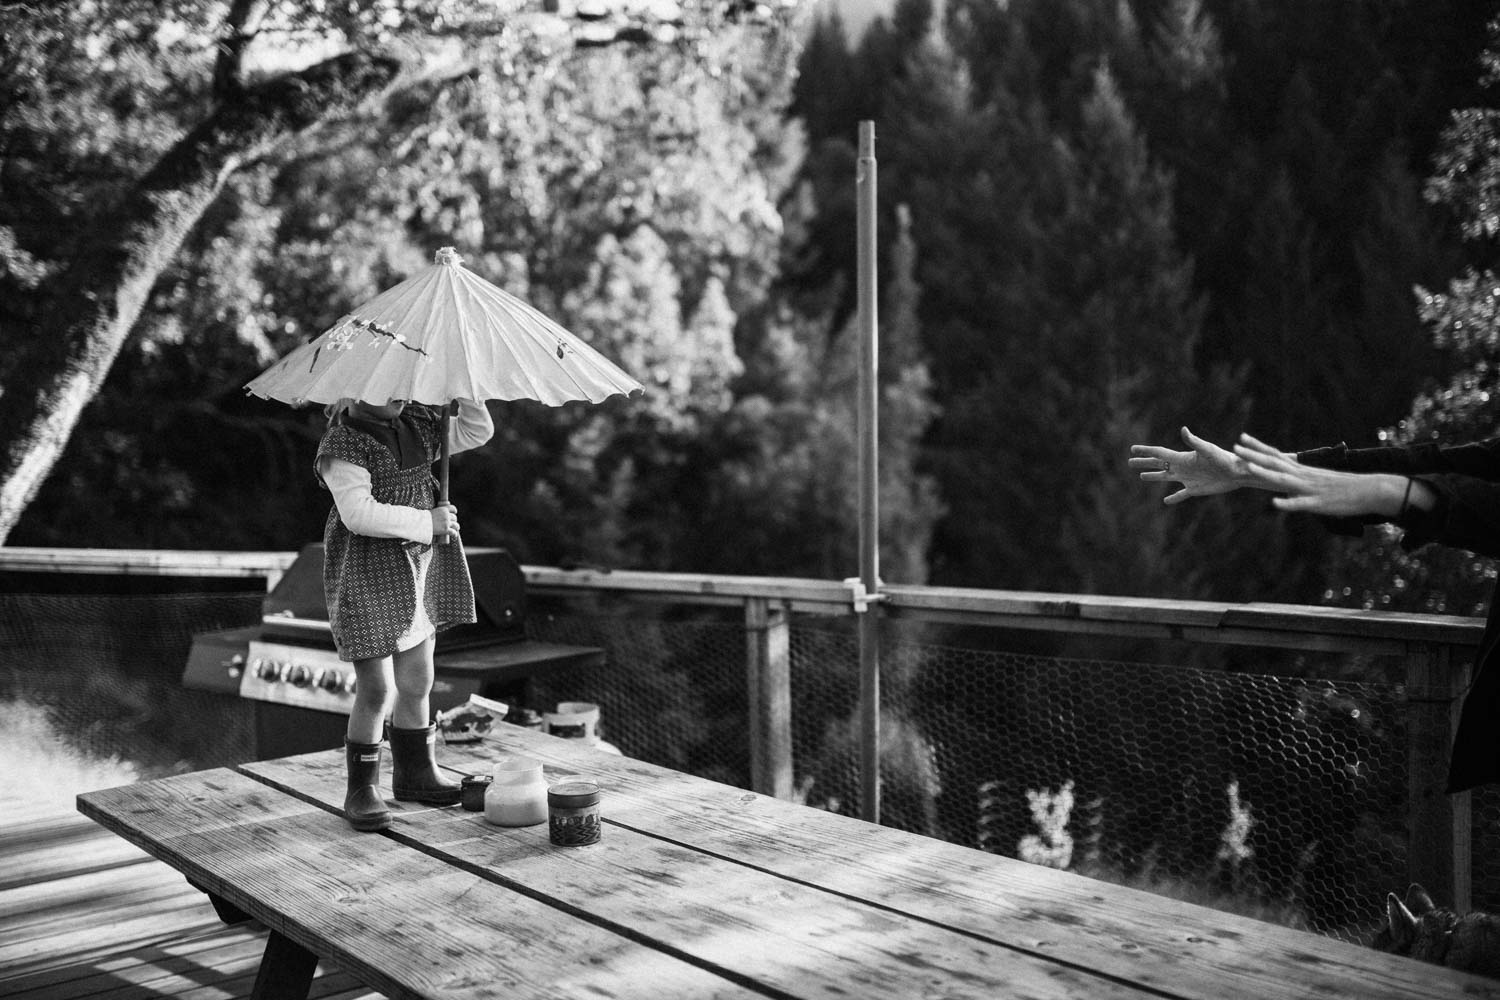 natural-and-artistic-black-and-white-emotional-image-dancing-on-picnic-table-with-unbrella-during-at-home-session-with-jen-fairchild-photography-garberville-ca